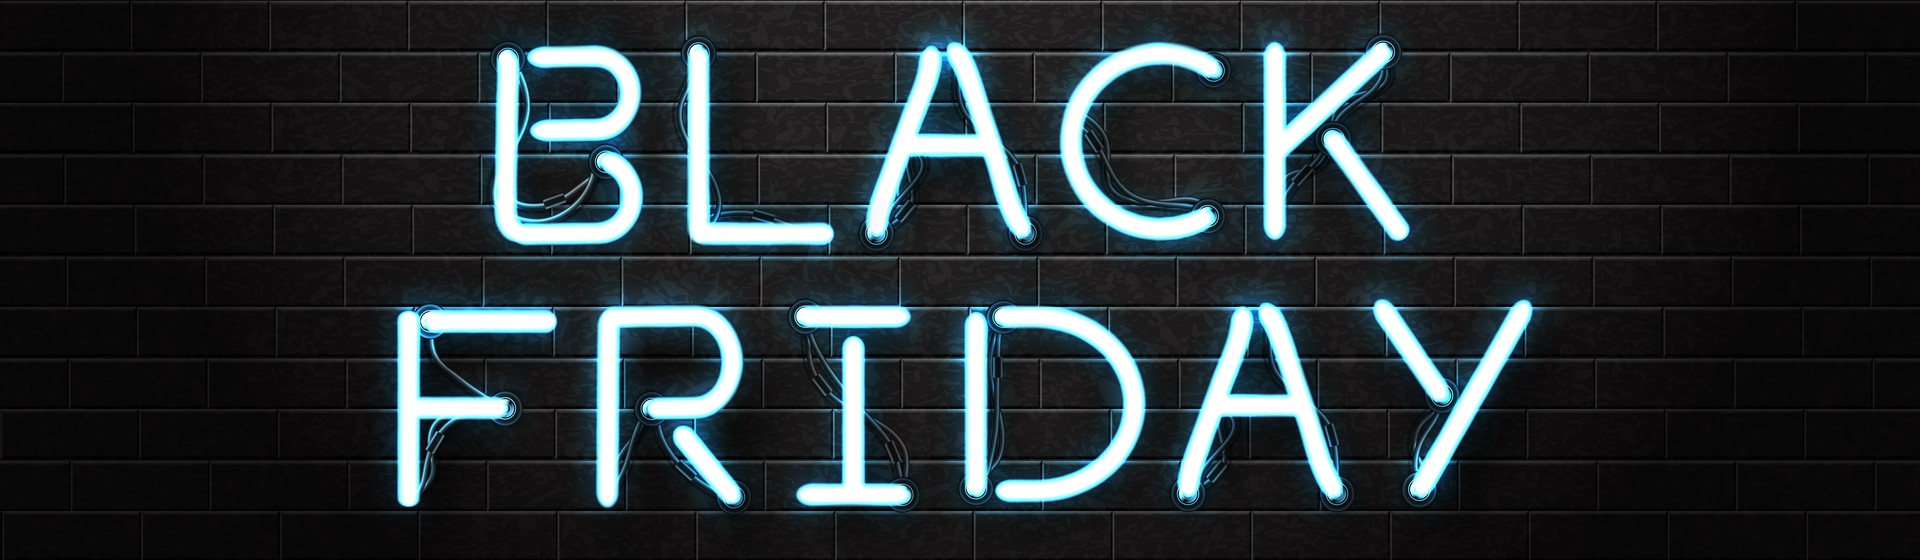 Como Aproveitar a Black Friday?